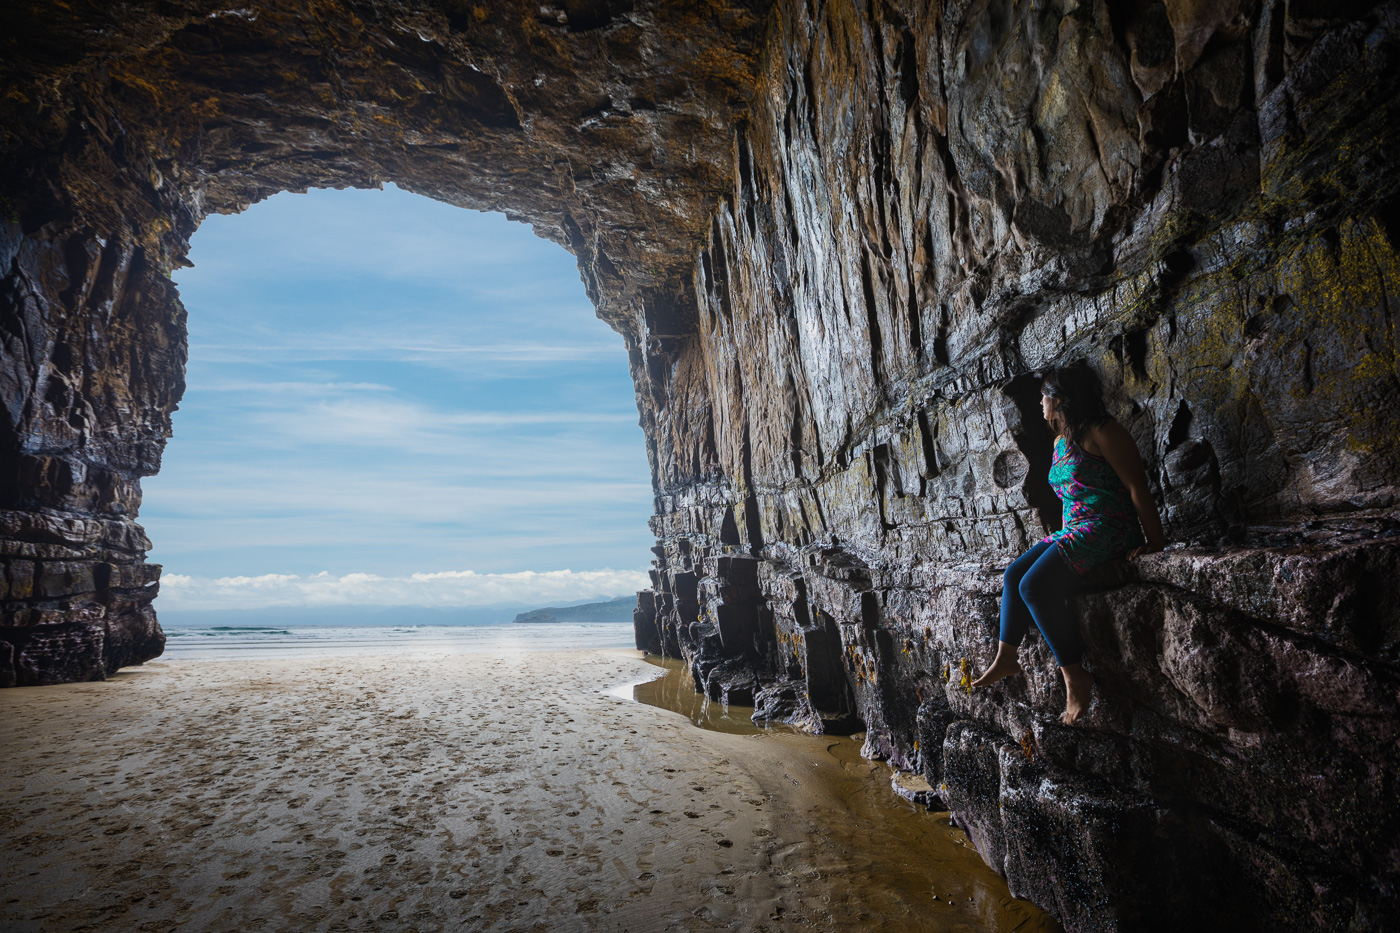 Taking in the view from inside one of the worlds longest sea caves